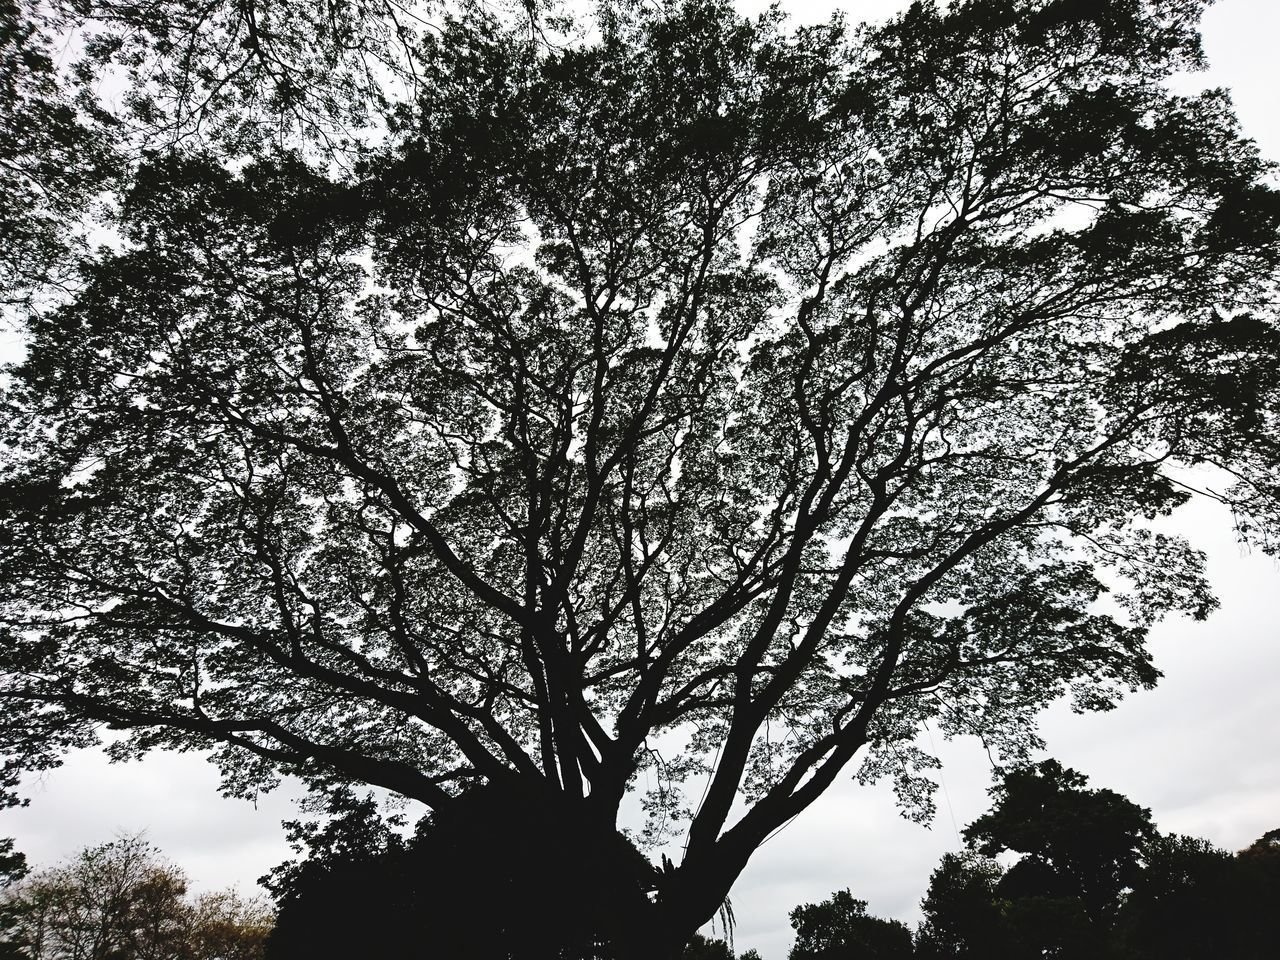 LOW ANGLE VIEW OF SILHOUETTE TREE